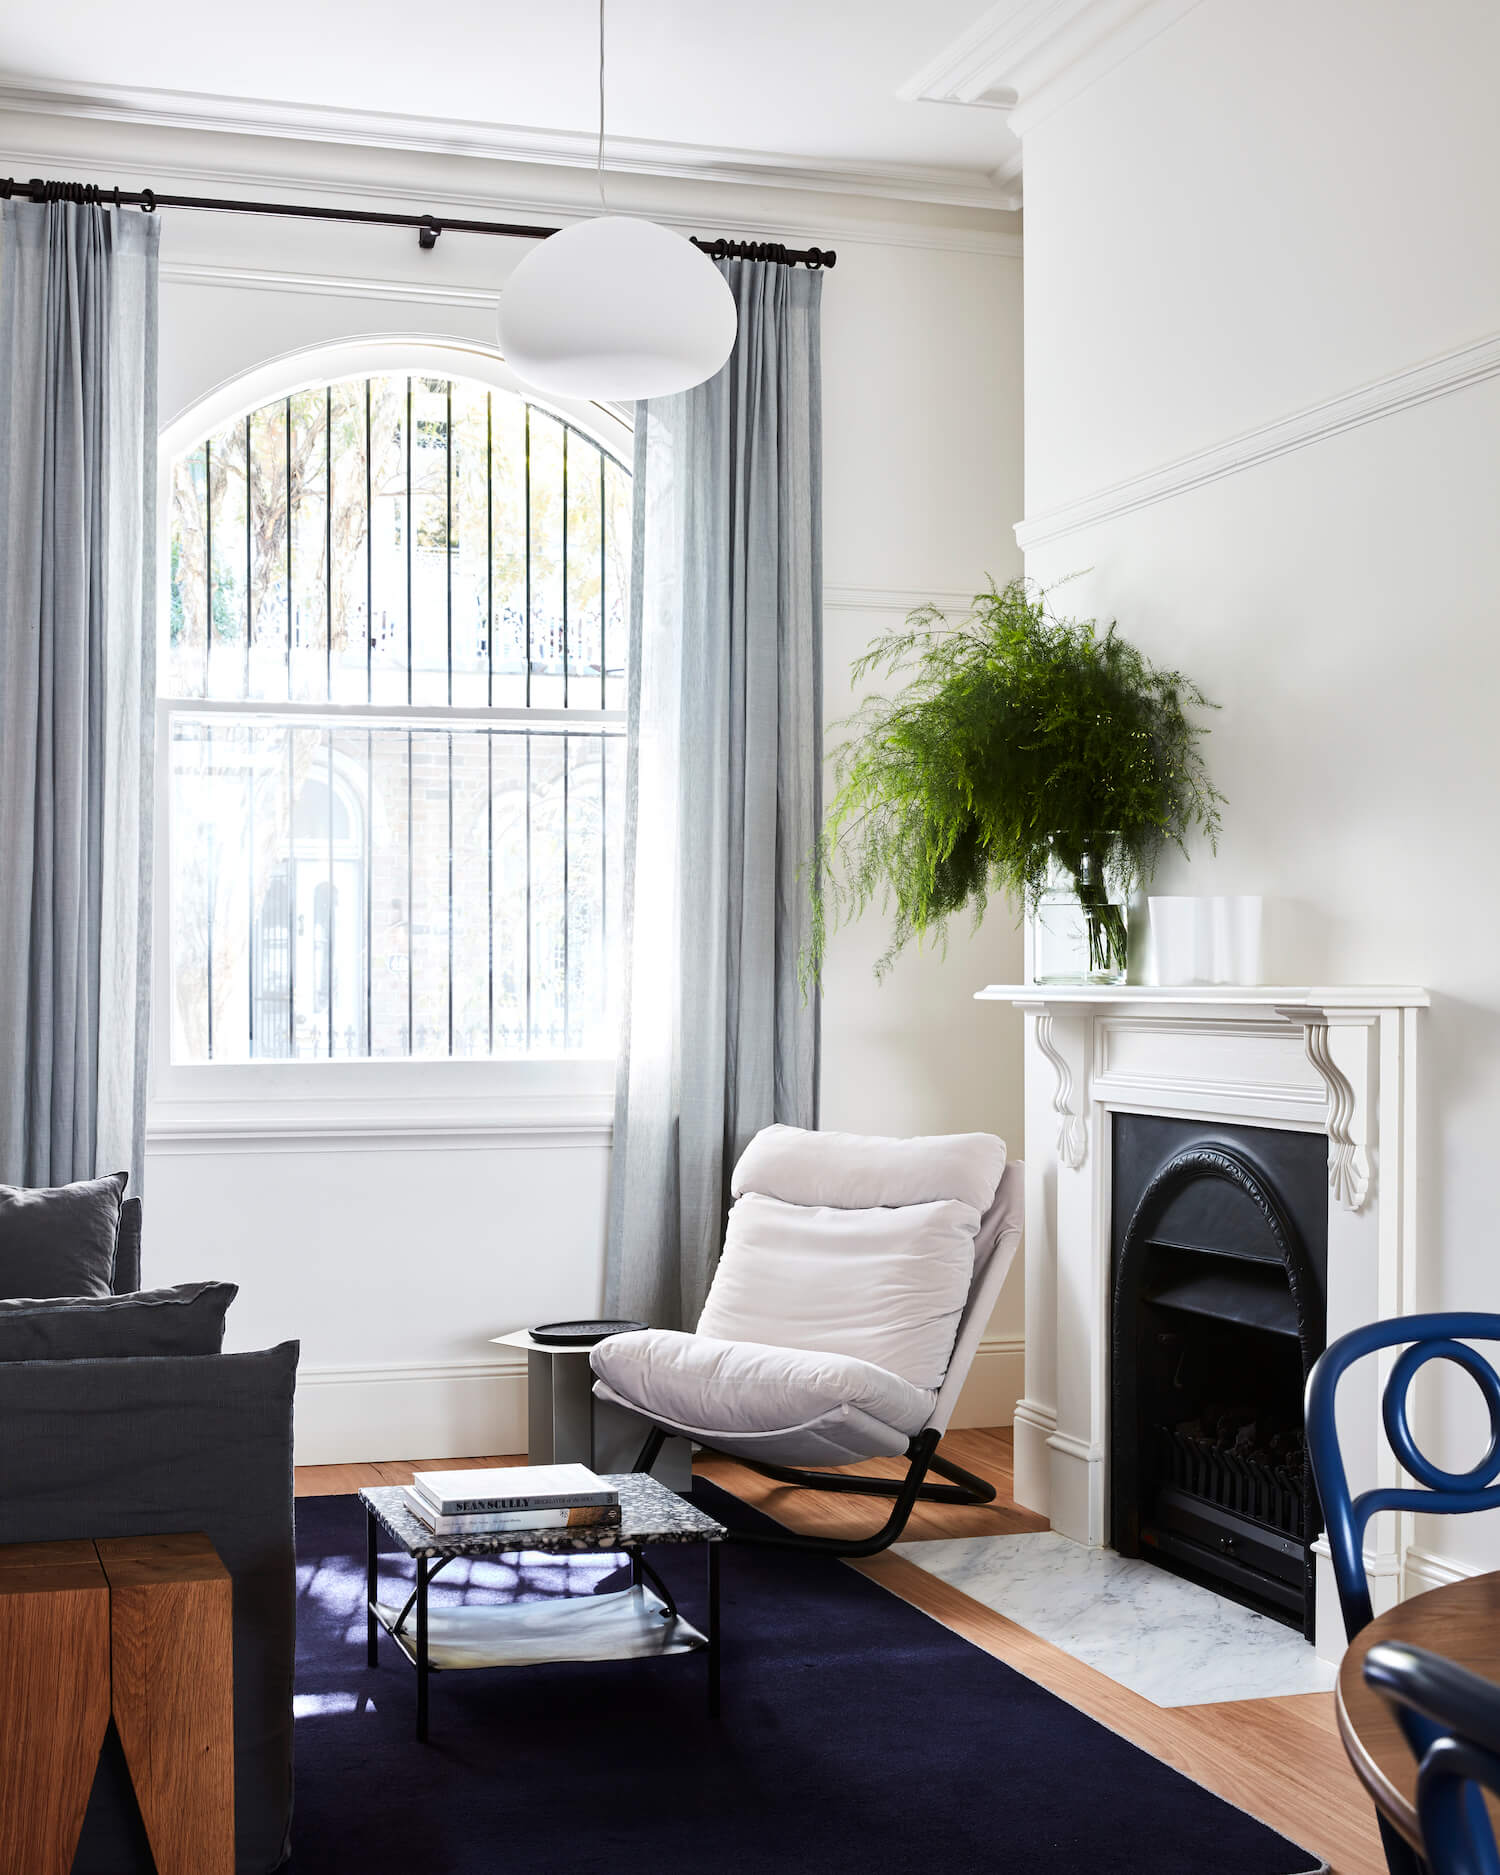 est living australian interiors surry hills fiona lynch 1